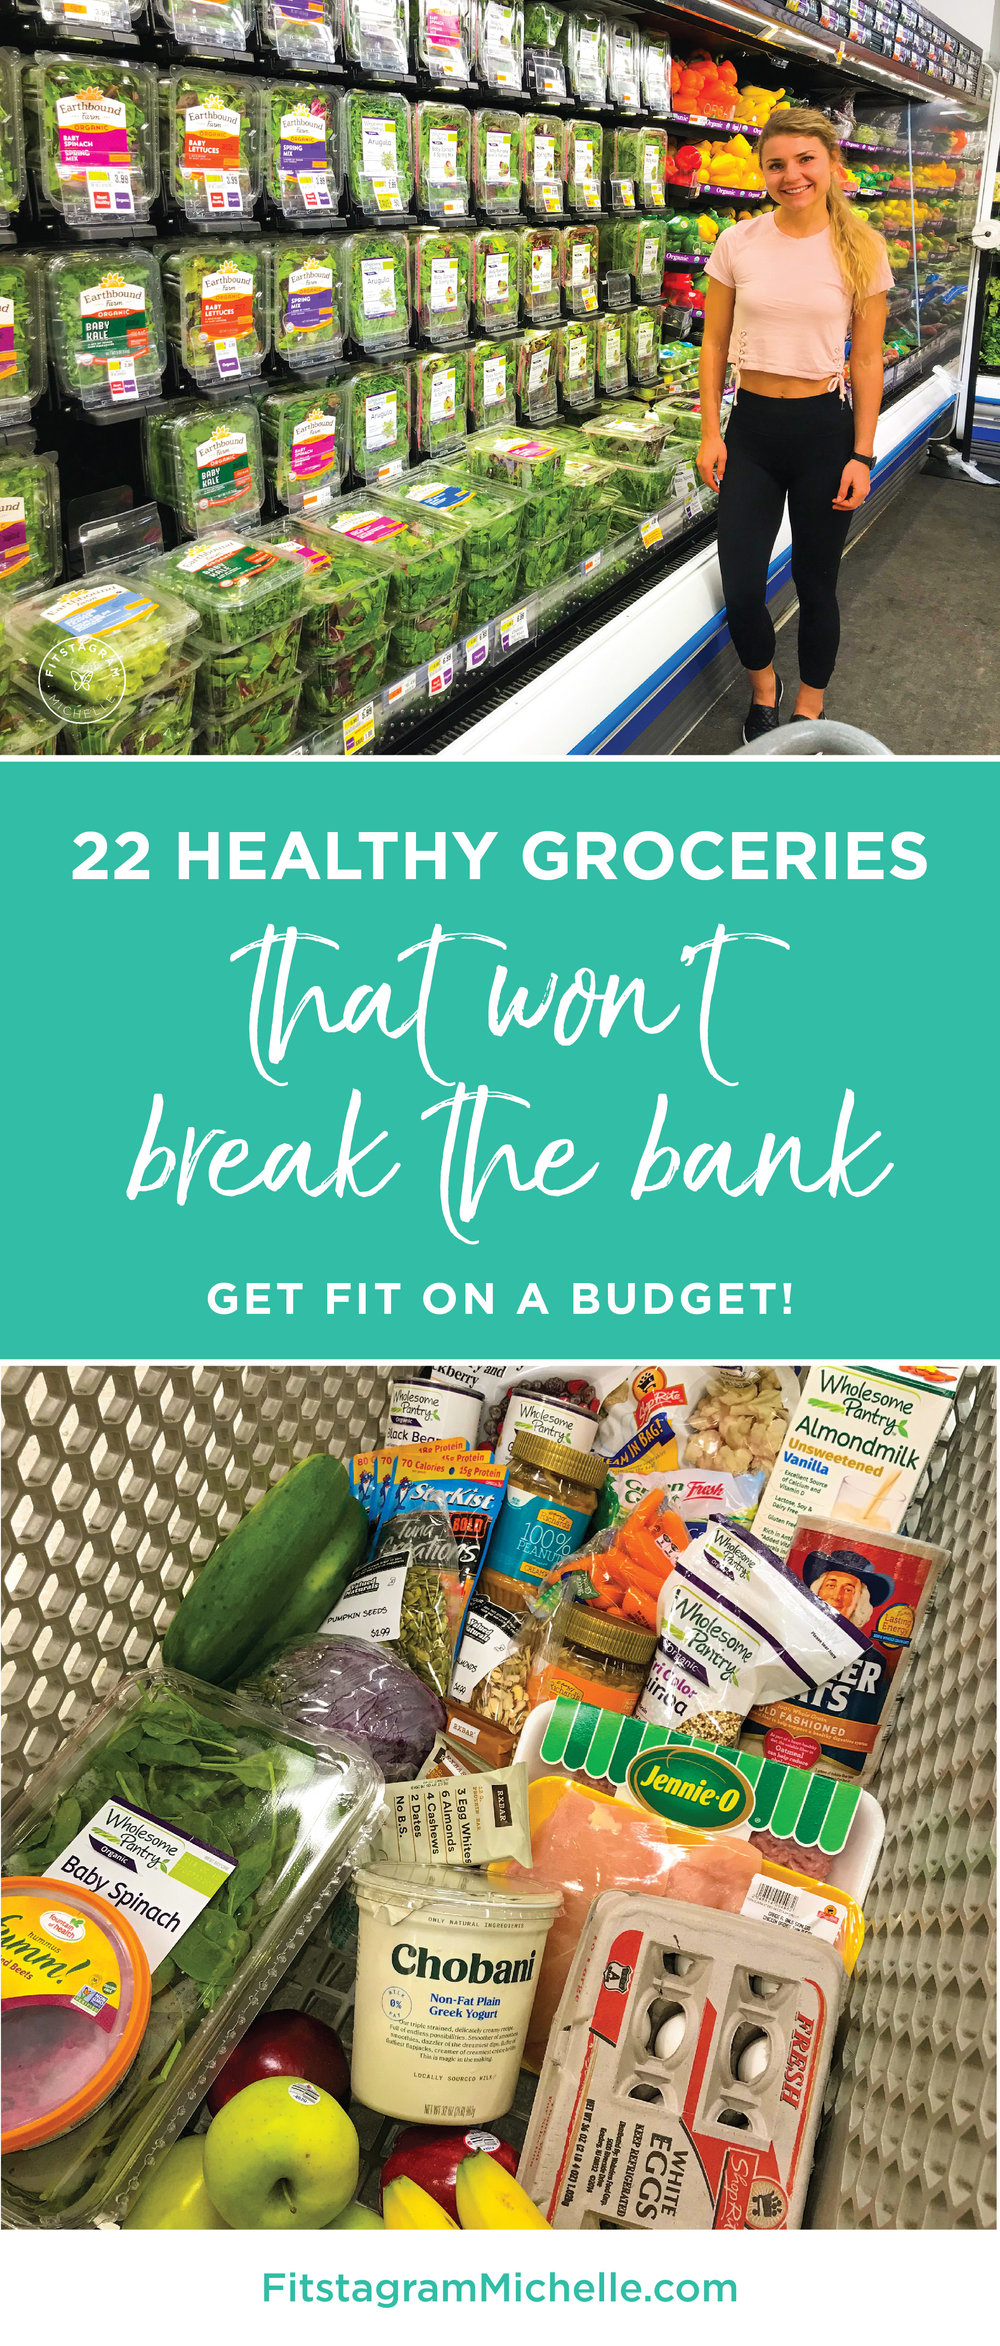 How to get fit on a budget! 24 Healthy groceries that won't break the bank. Visit FitstagramMichelle.com to see how to shop better to lose weight and tone up without overspending.